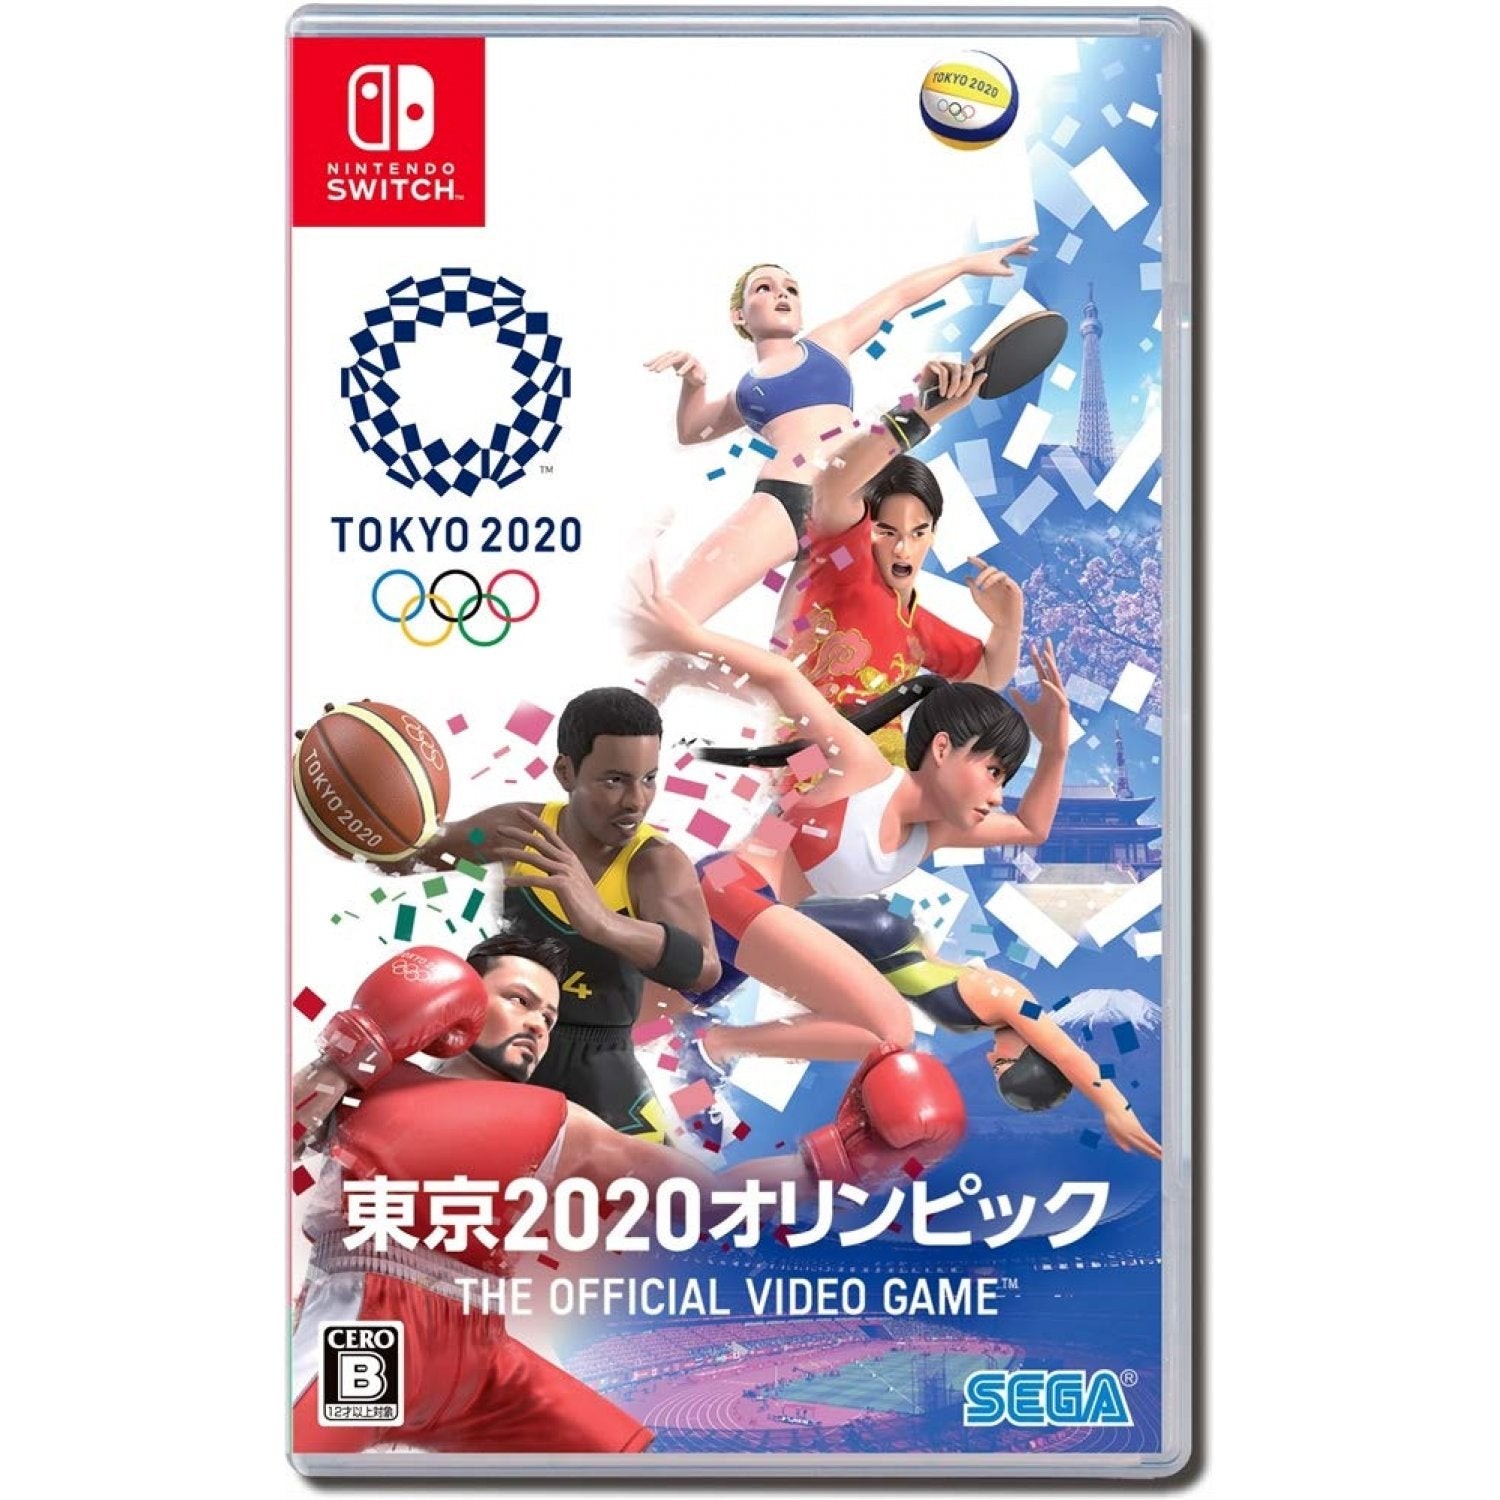 Nintendo Switch 2020 Games.Nintendo Switch Olympic Games Tokyo 2020